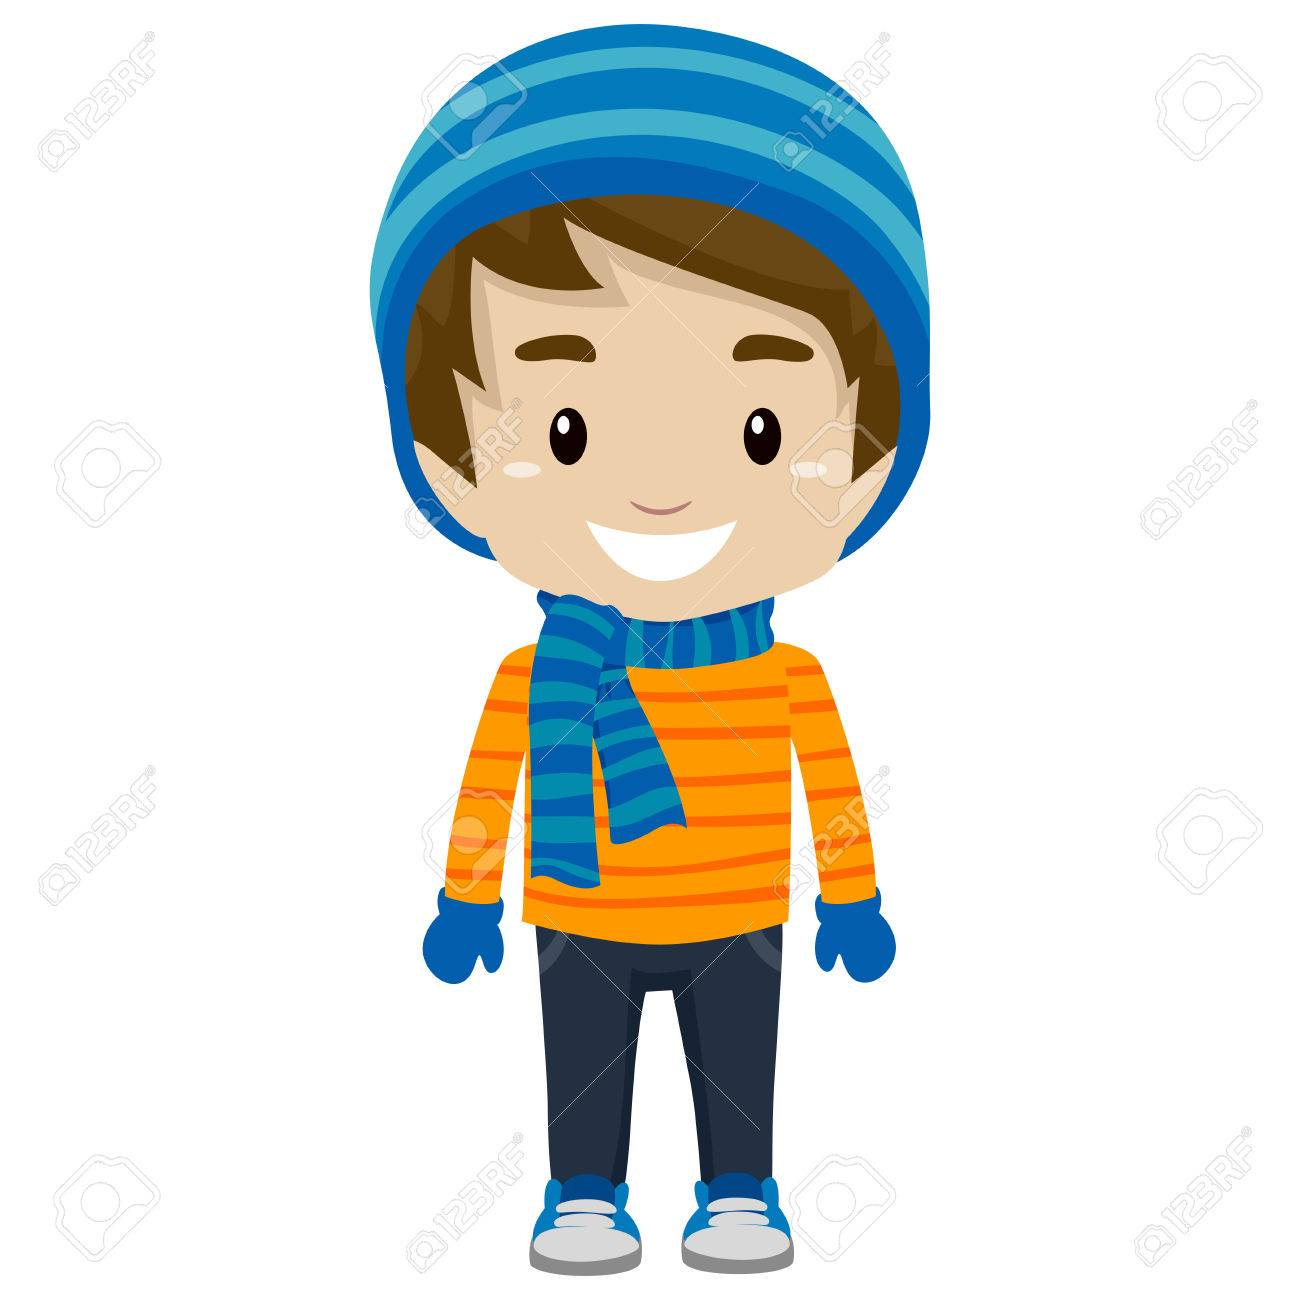 Boy Clipart for printable.